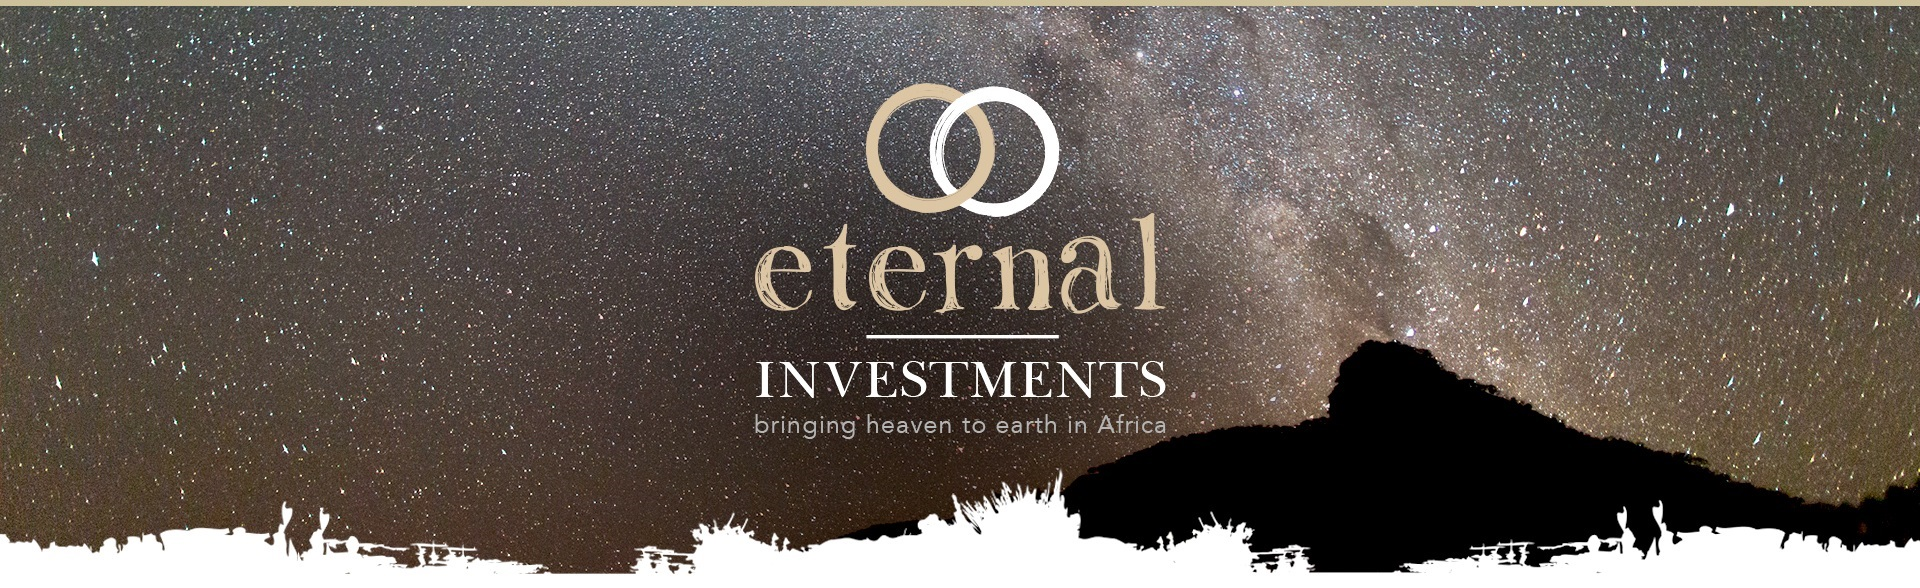 eternal investments-news banner